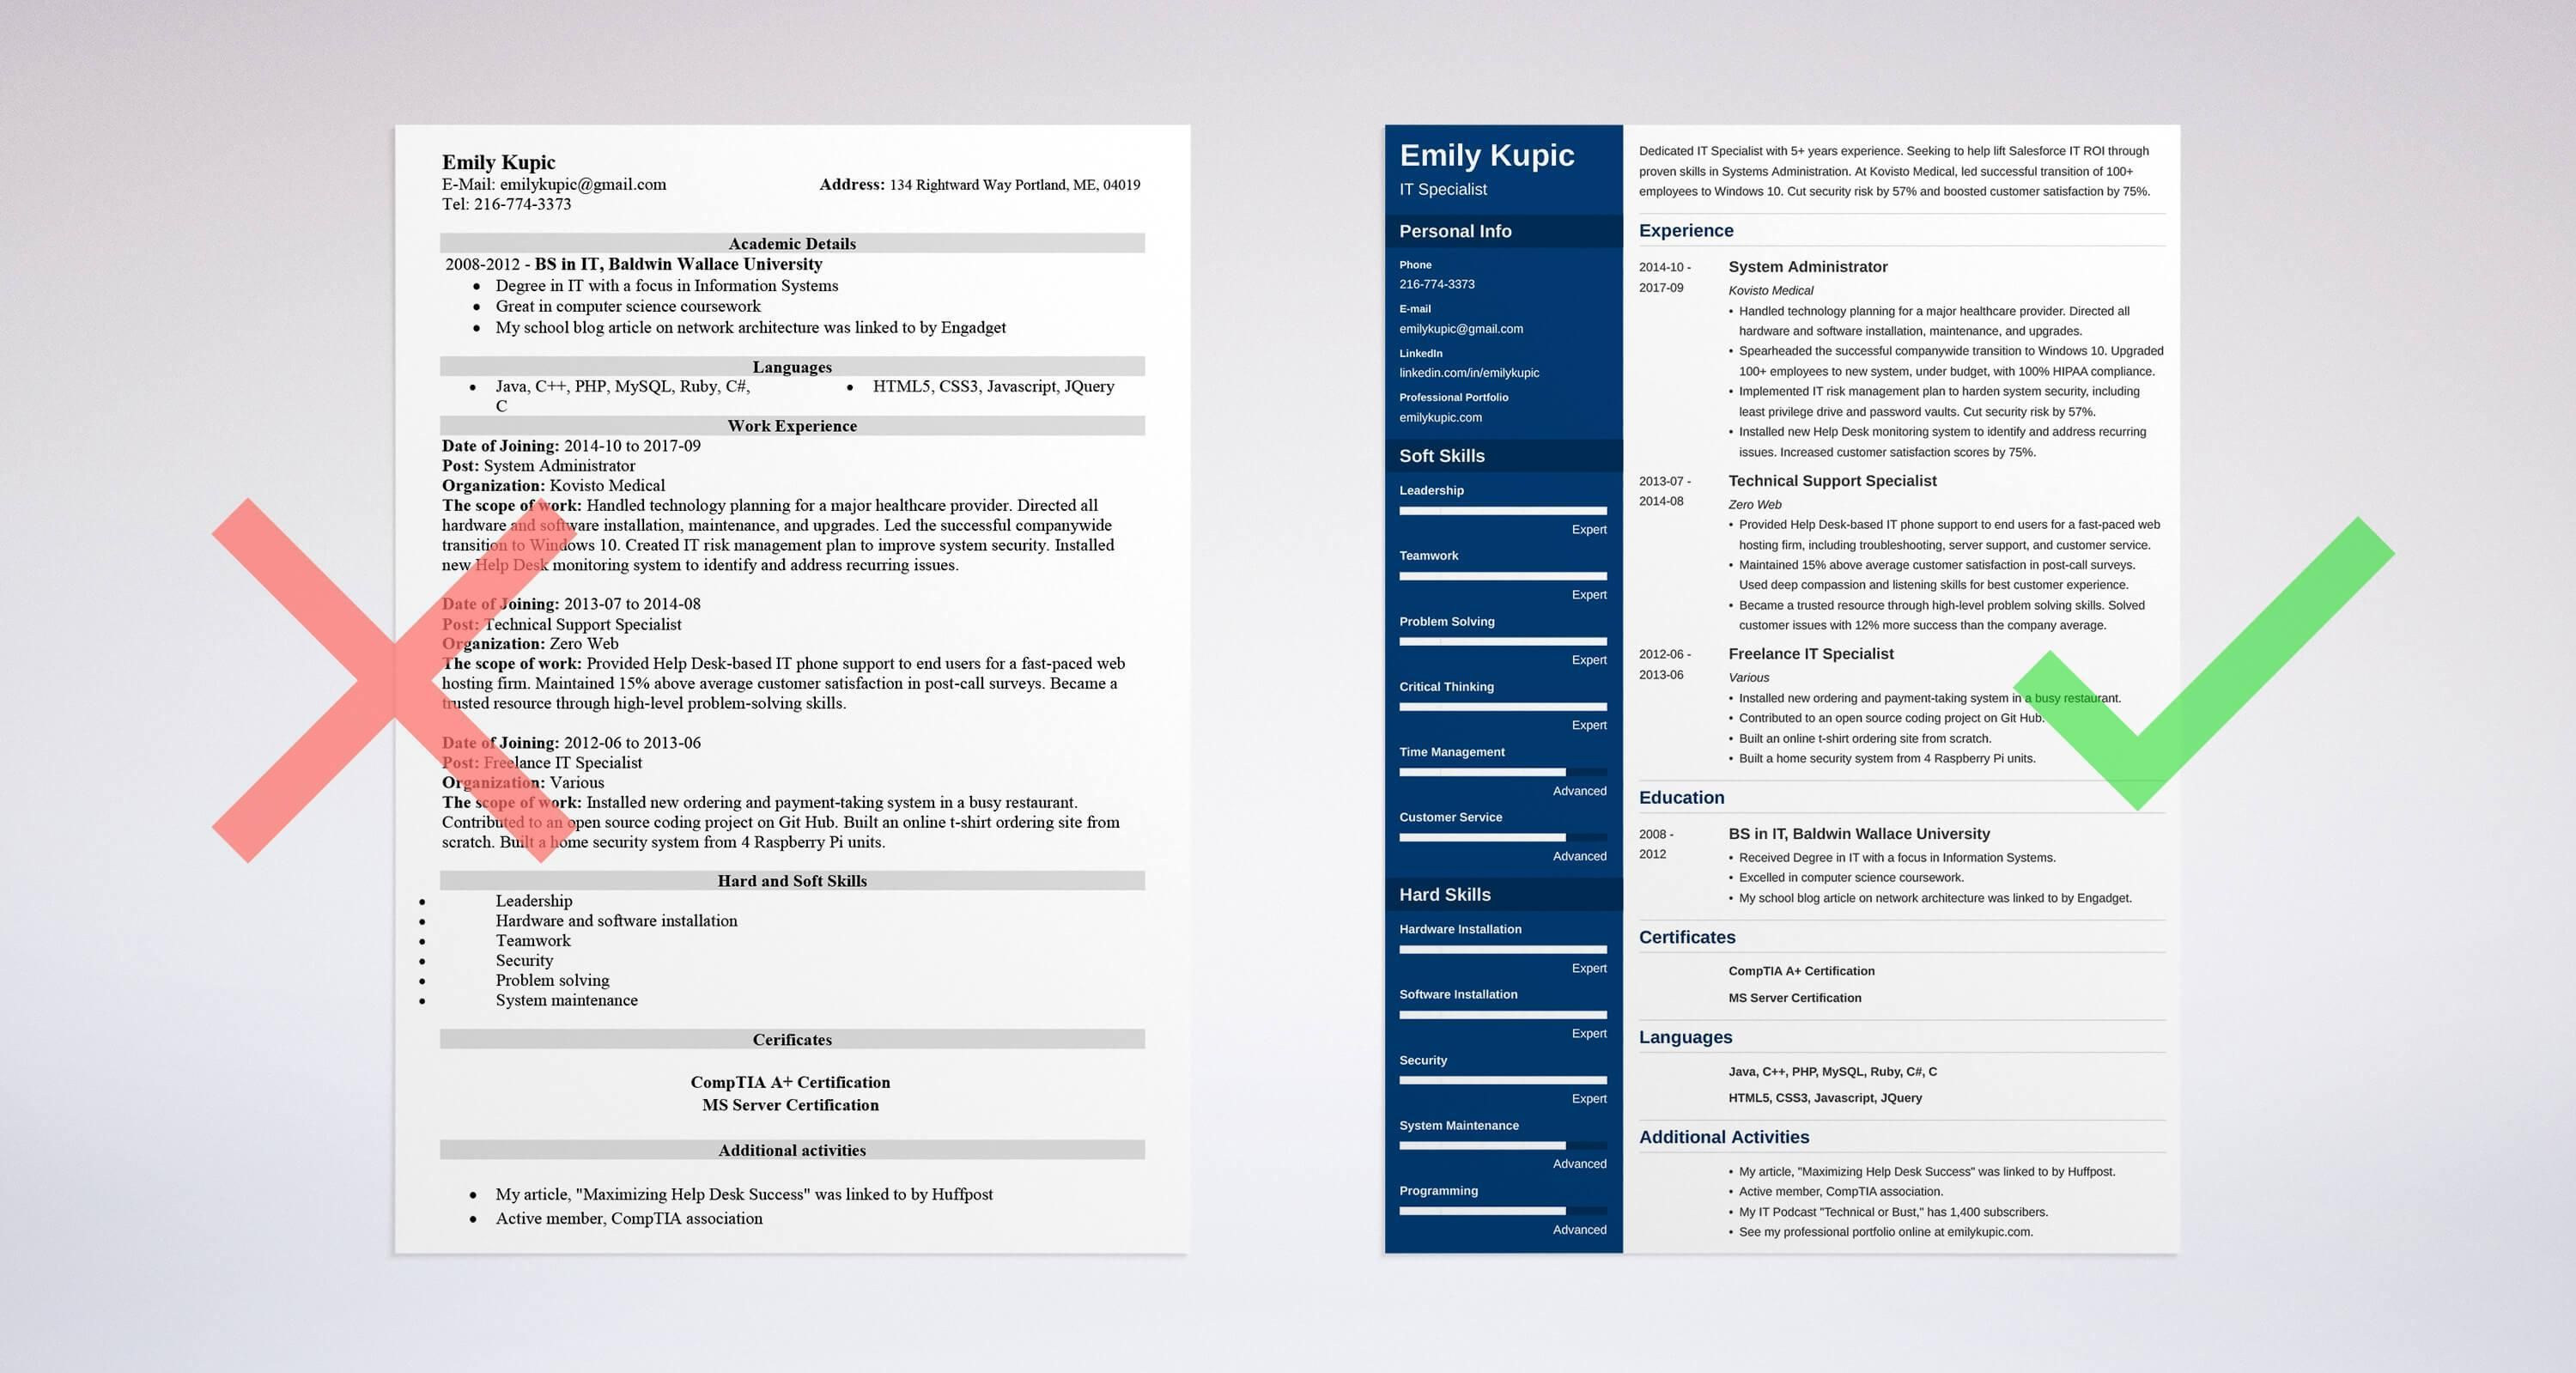 How to Start a Resume: A Complete Guide With Tips & 15+ Examples ...